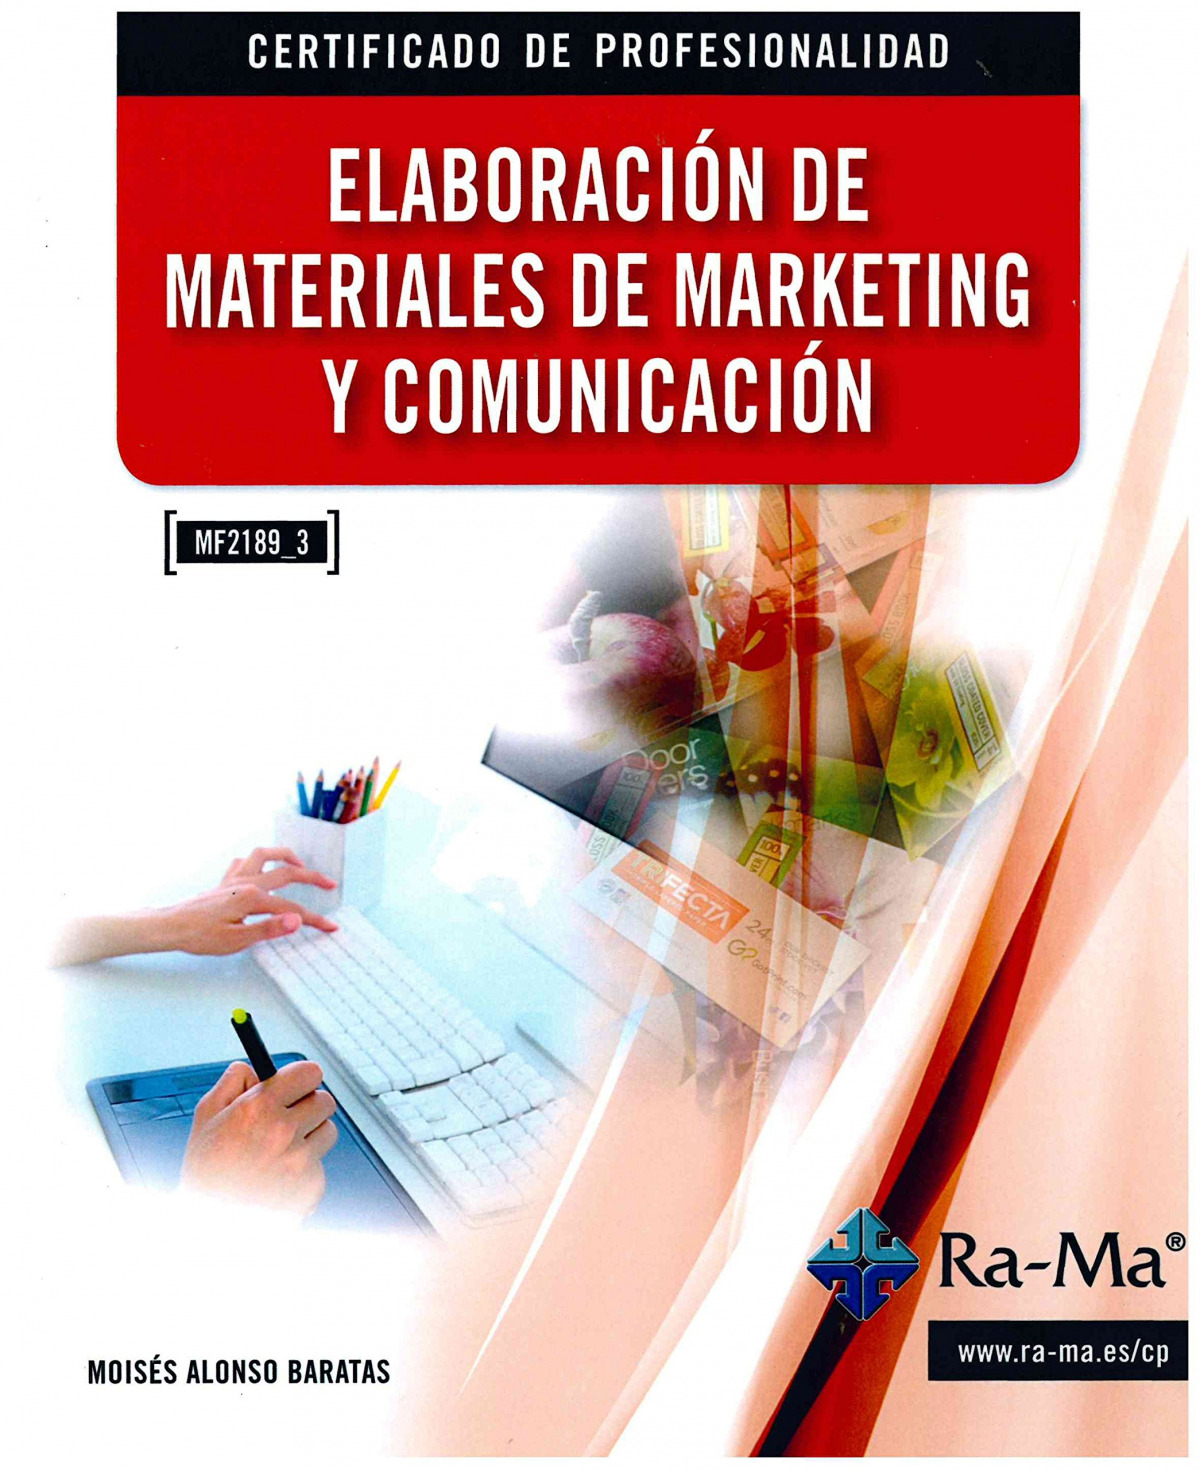 ELAB.MATERIALES DE MARKETING Y COMUNICACION (MF2189_3) 9788499645681